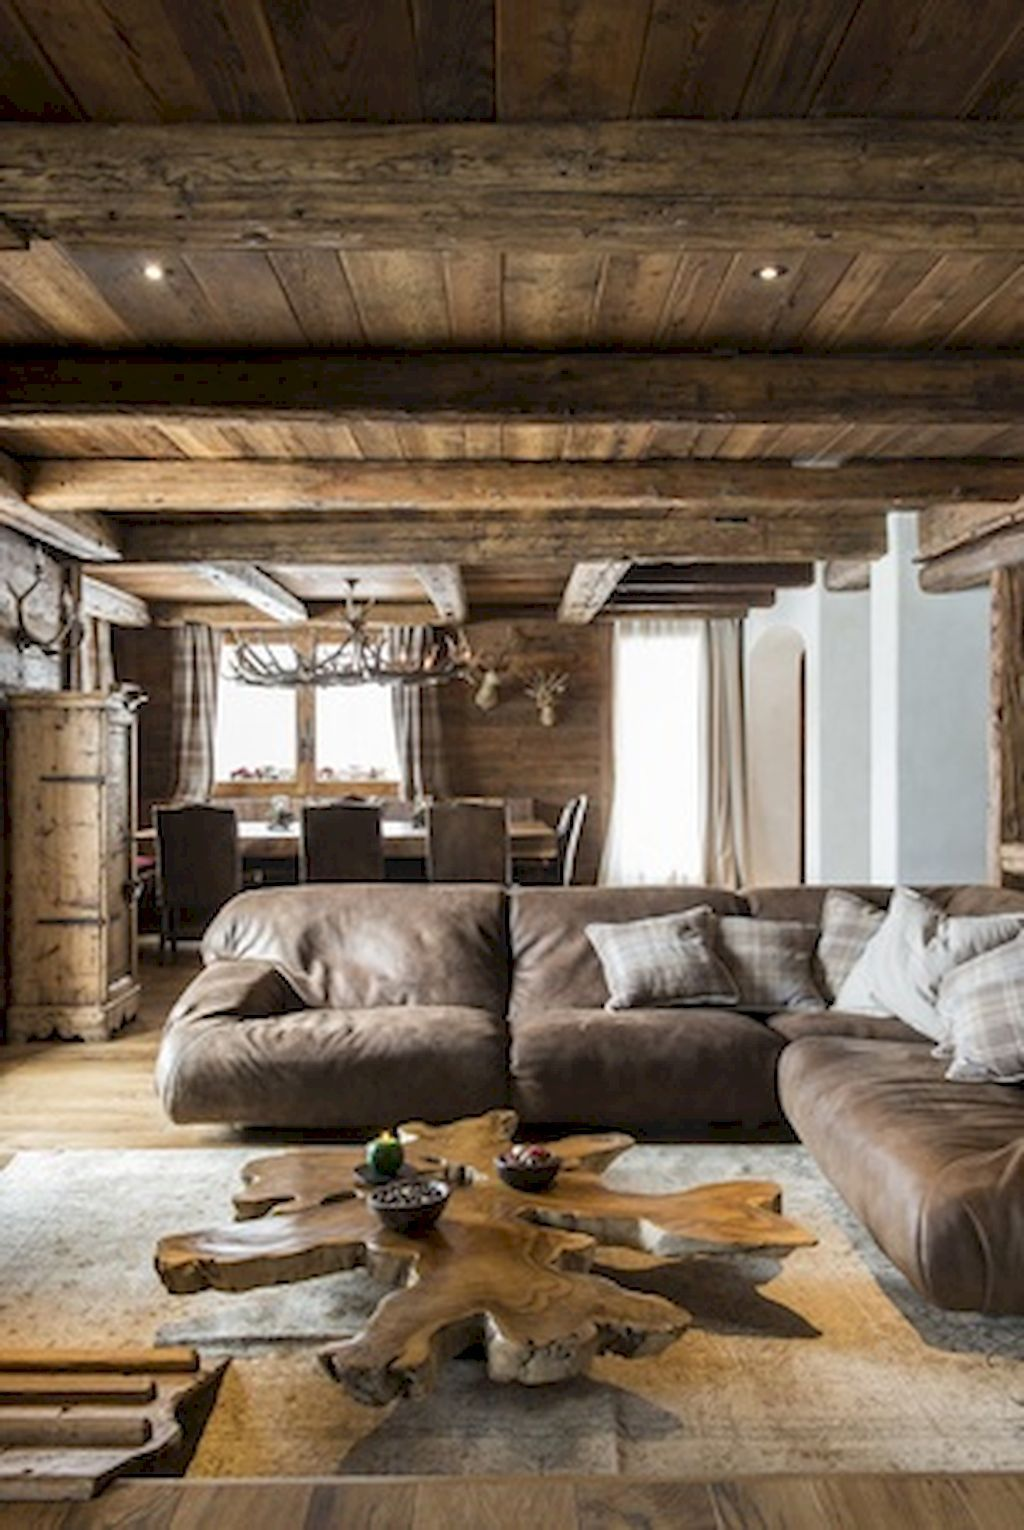 Gorgeous 9 Chalet Living Room Decor Ideas https://coachdecor.com